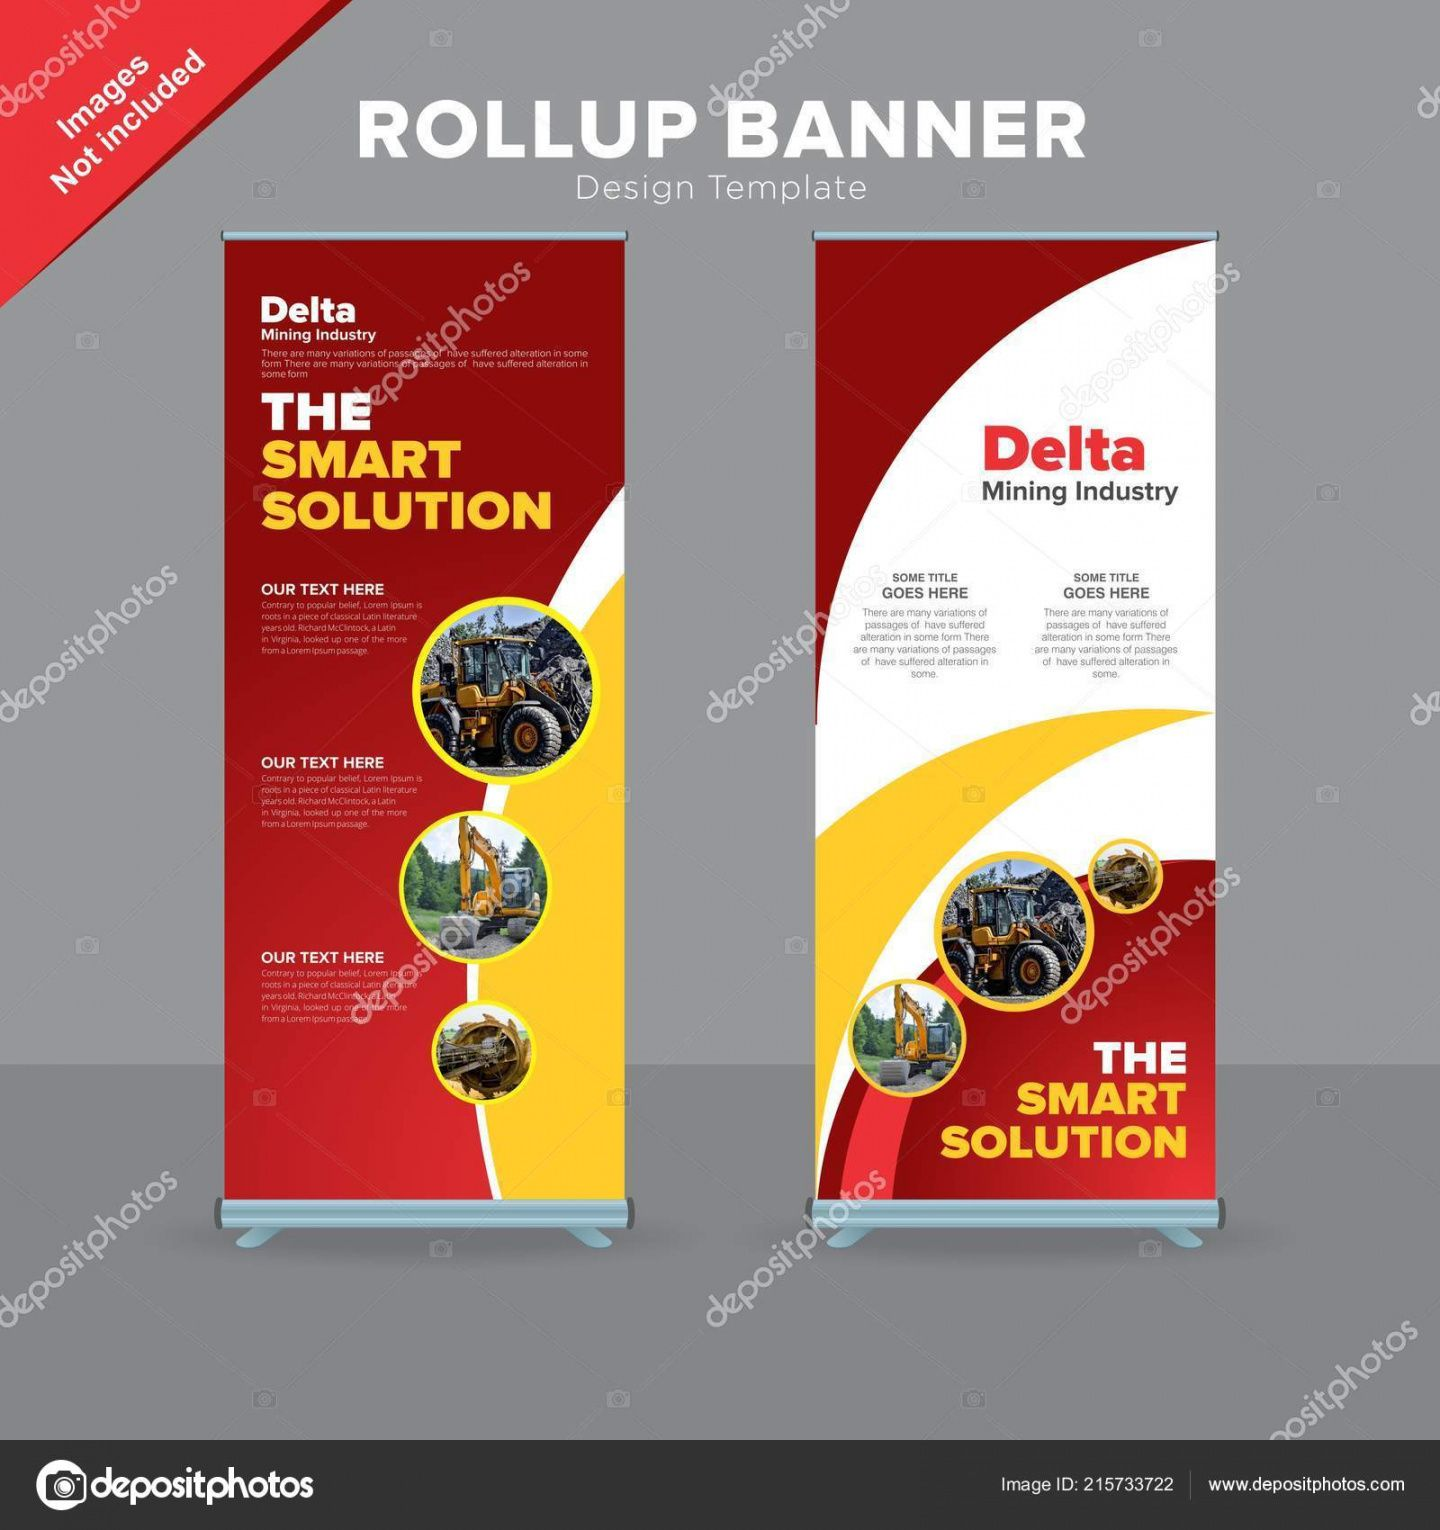 editable professional rollup banner design template 215733722 roll up banner design template doc